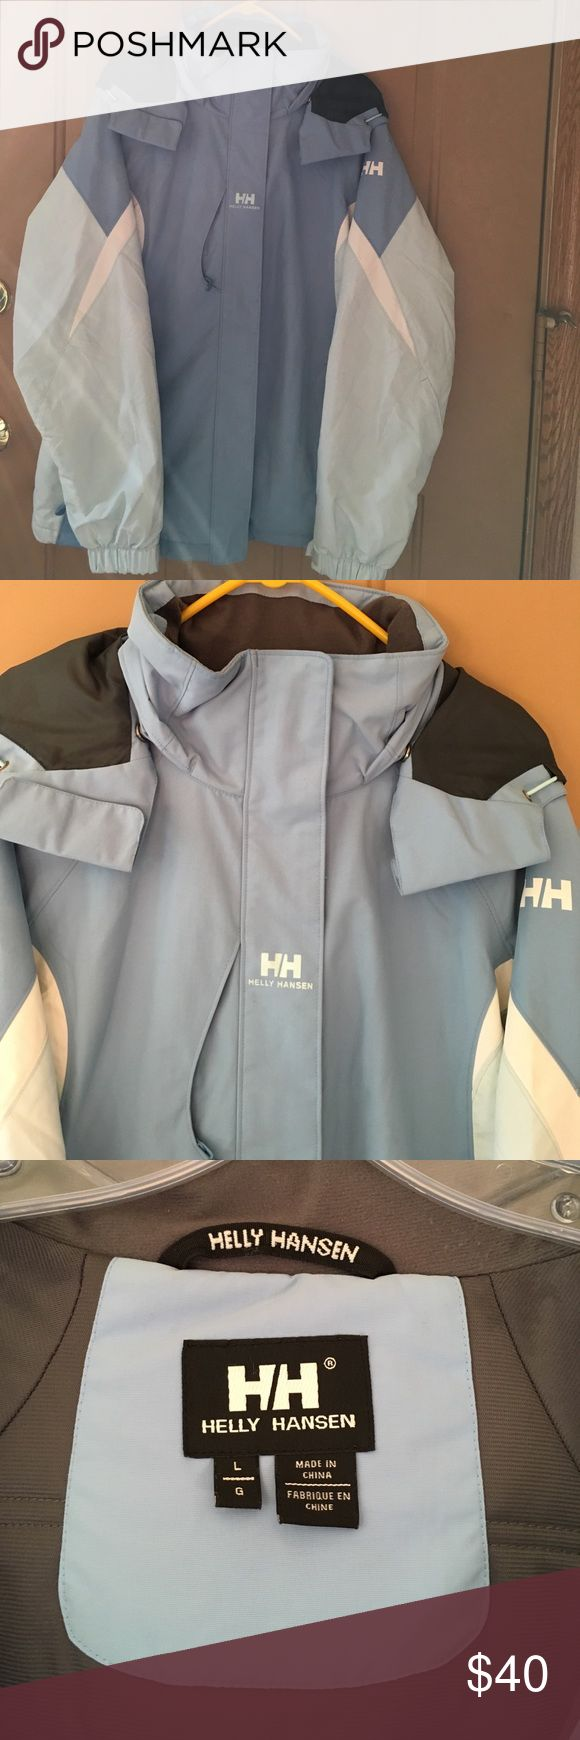 """Helly Hansen Perfect Balance Powder Jacket Helly Hansen """"Powder"""" Ski Jacket- Blue exterior with gray interior. Removable hood. Worn twice, in great condition, super clean. Non smoking, no pet home.  Size L Helly Hansen Jackets & Coats Utility Jackets"""